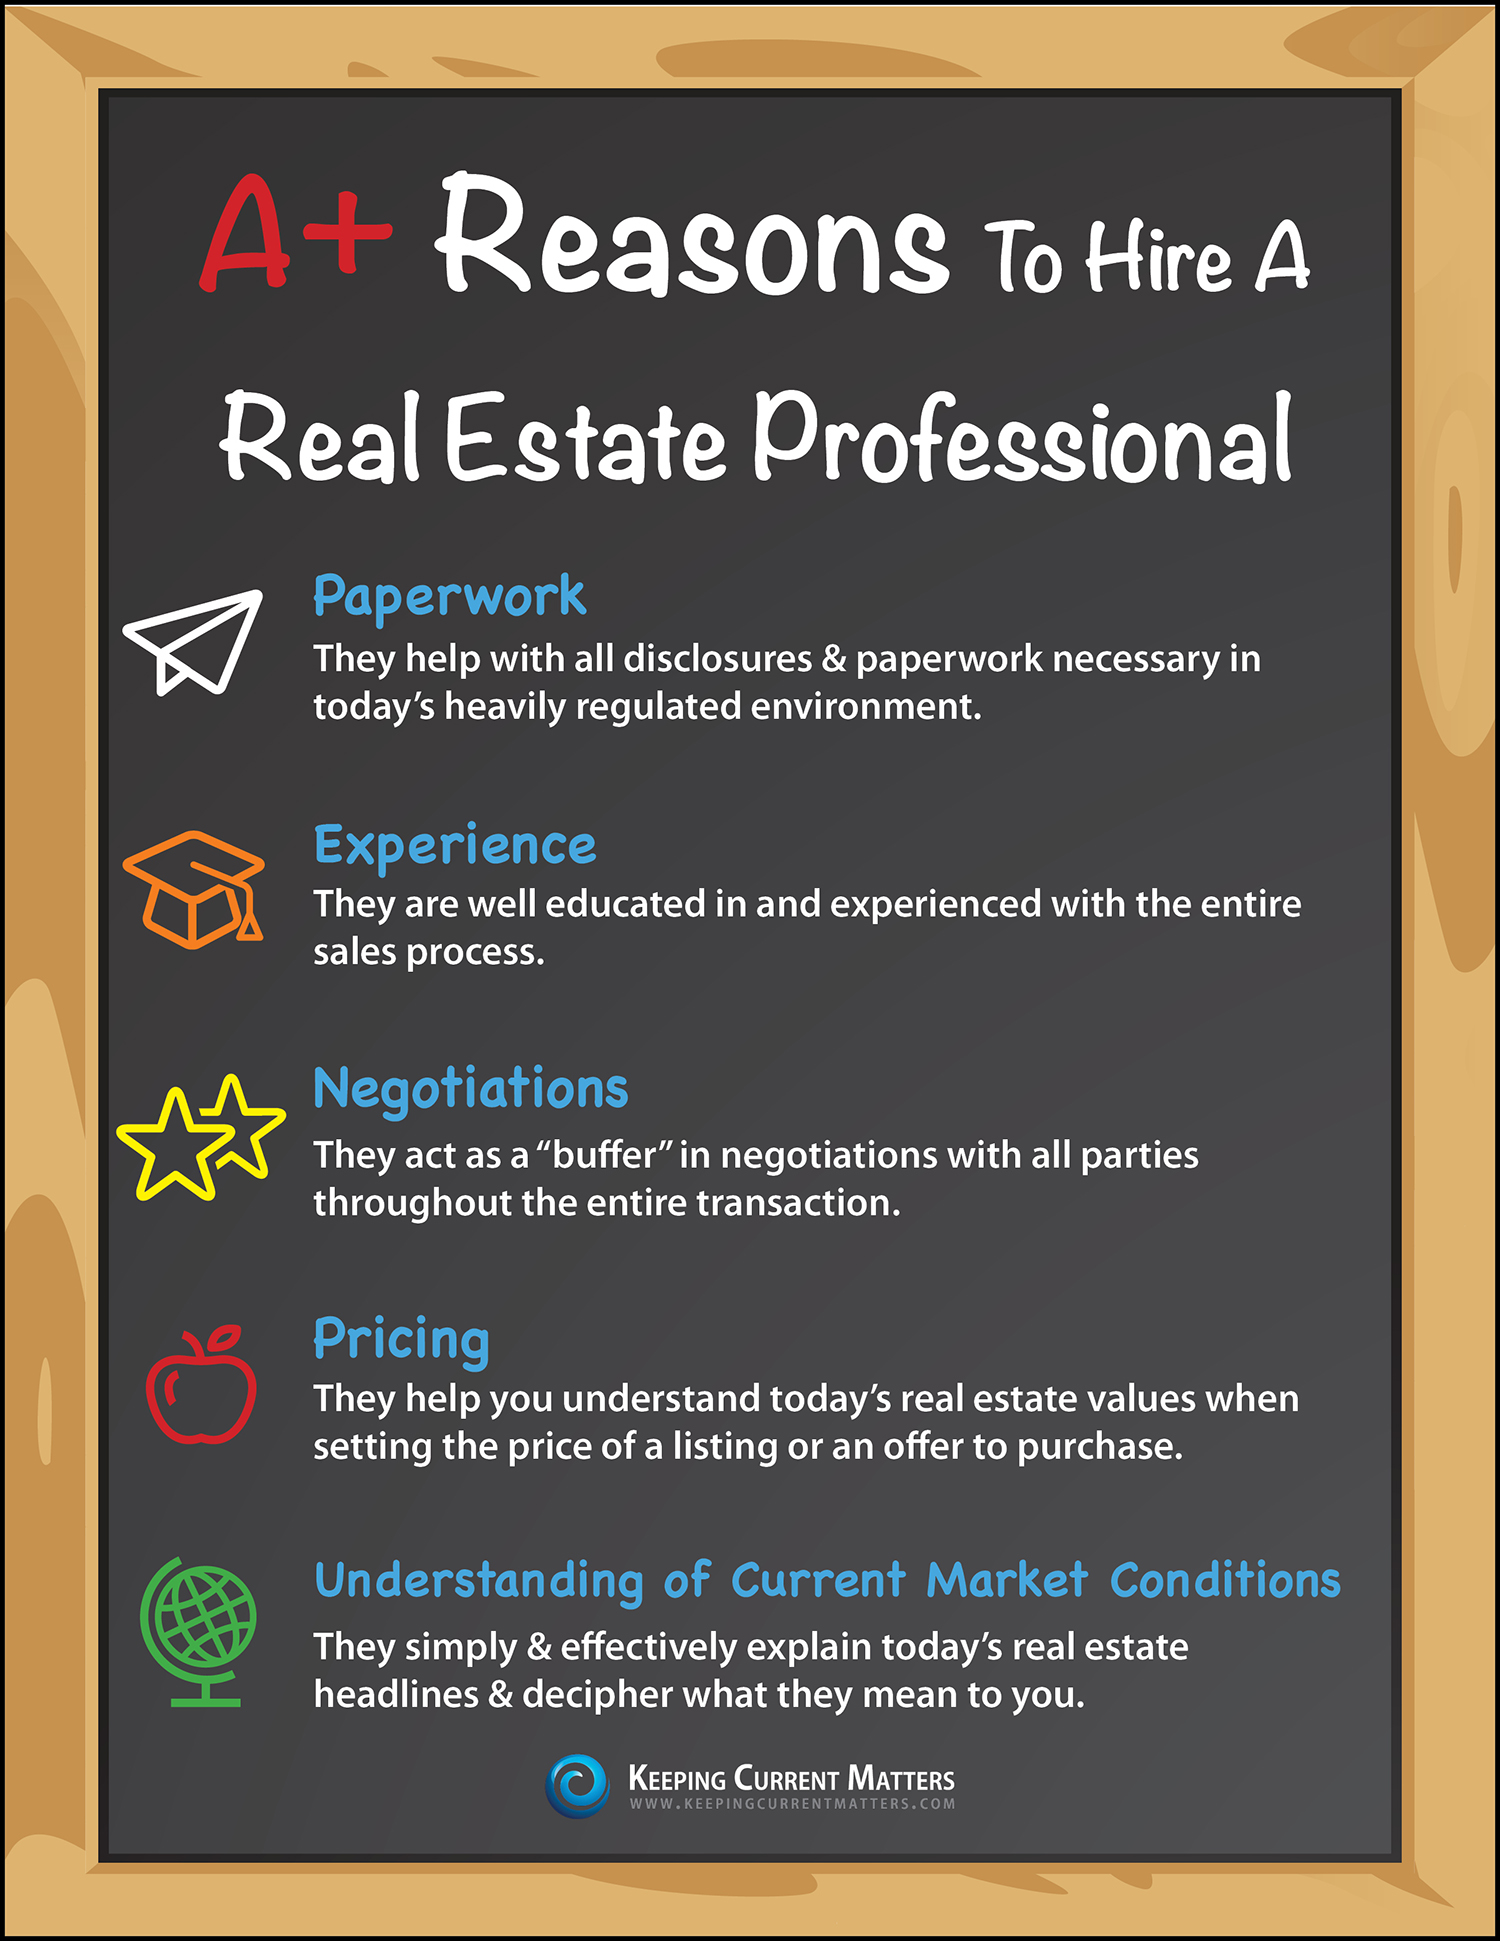 A+ Reasons To Hire A Real Estate Professional [INFOGRAPHIC]   Keeping Current Matters